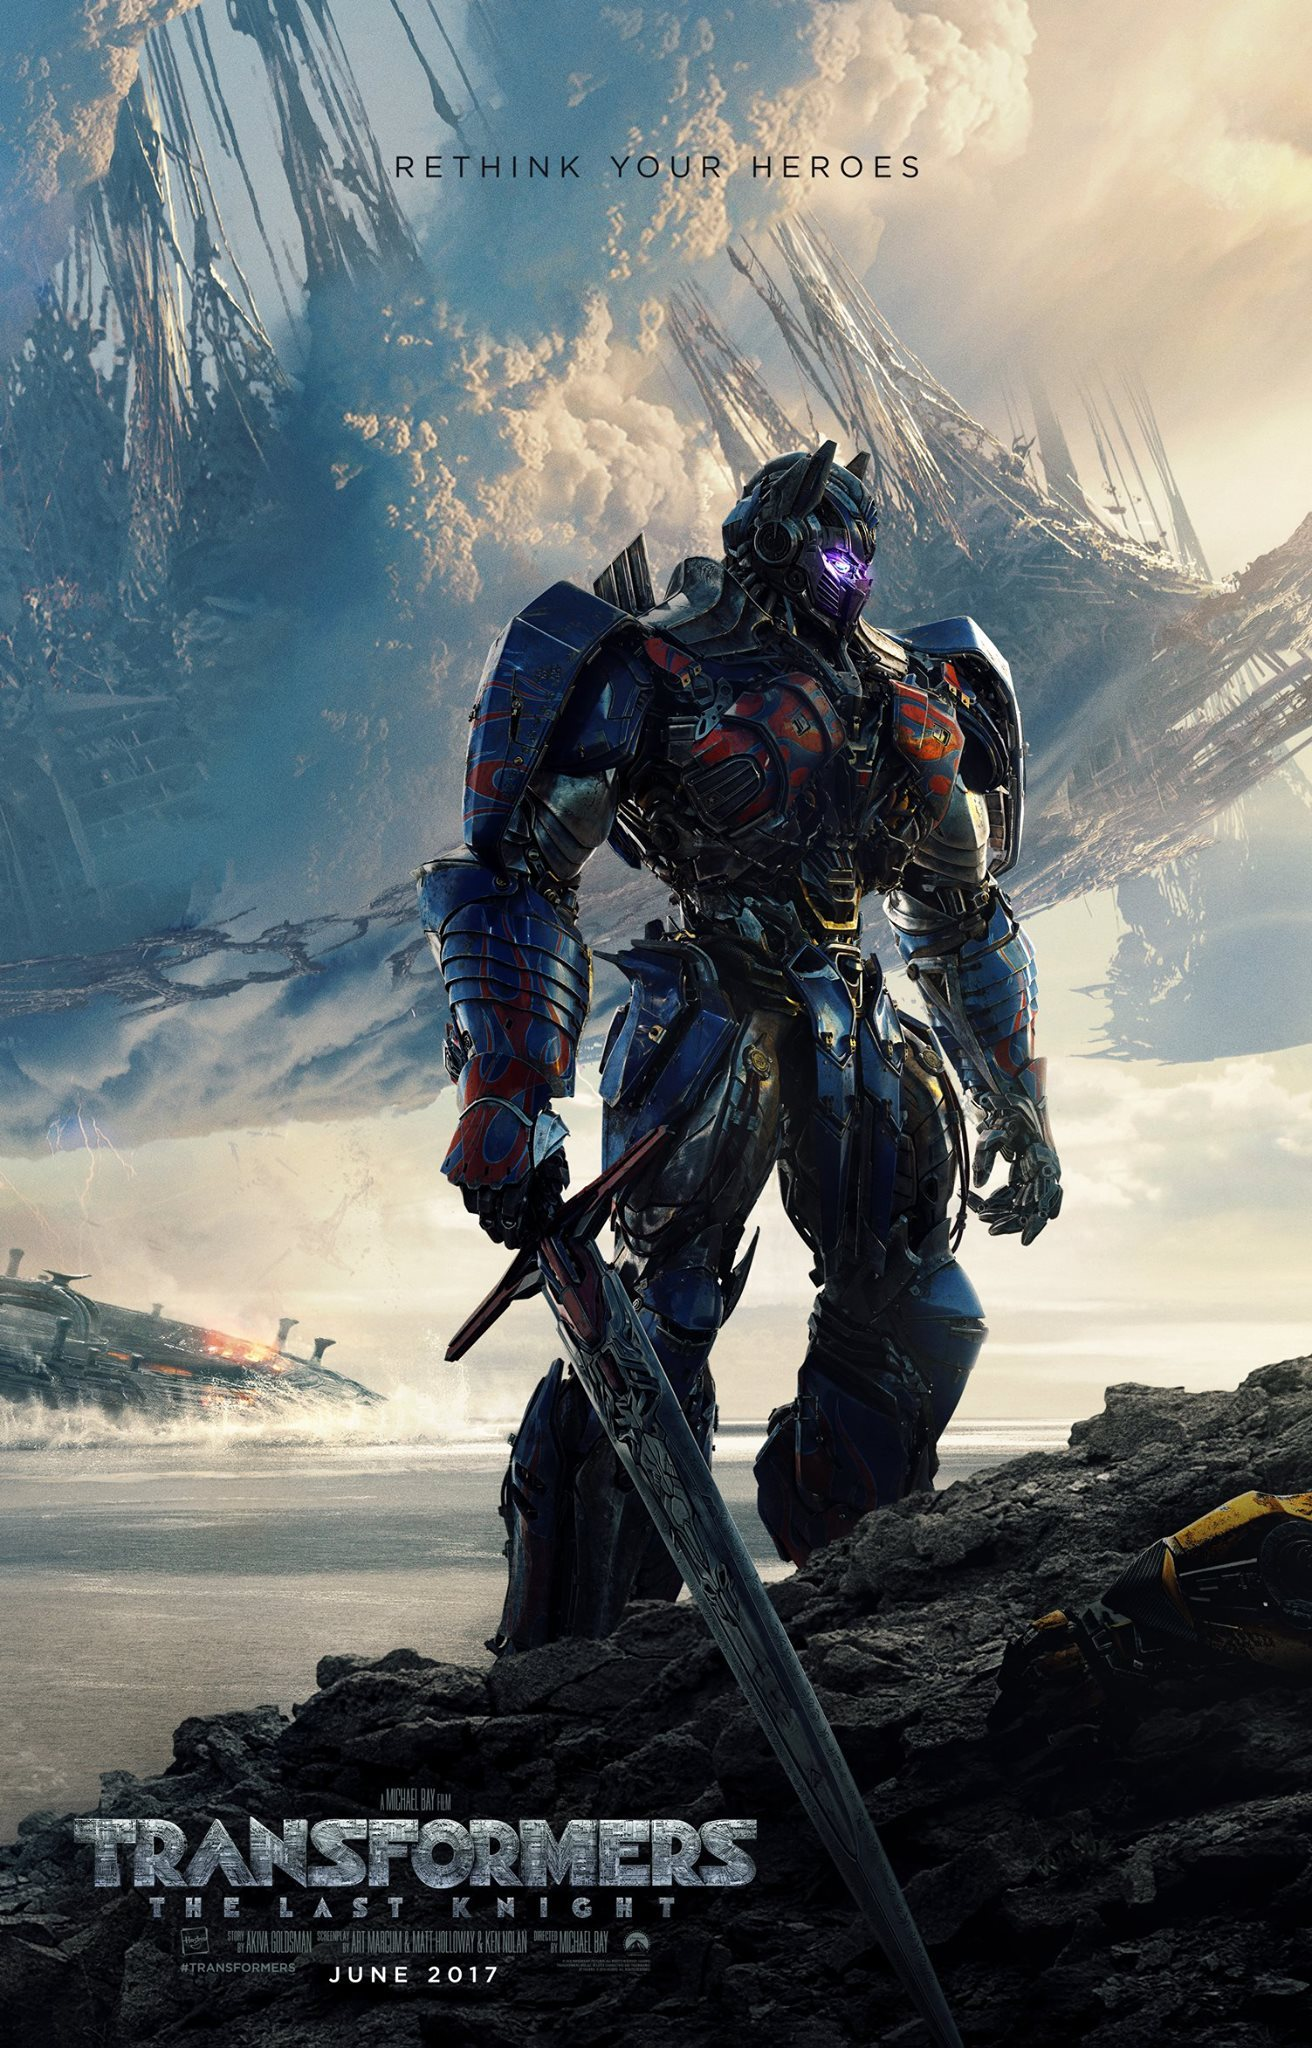 phim chiếu rạp Paramount - Transformers The Last Knight - elle vietnam